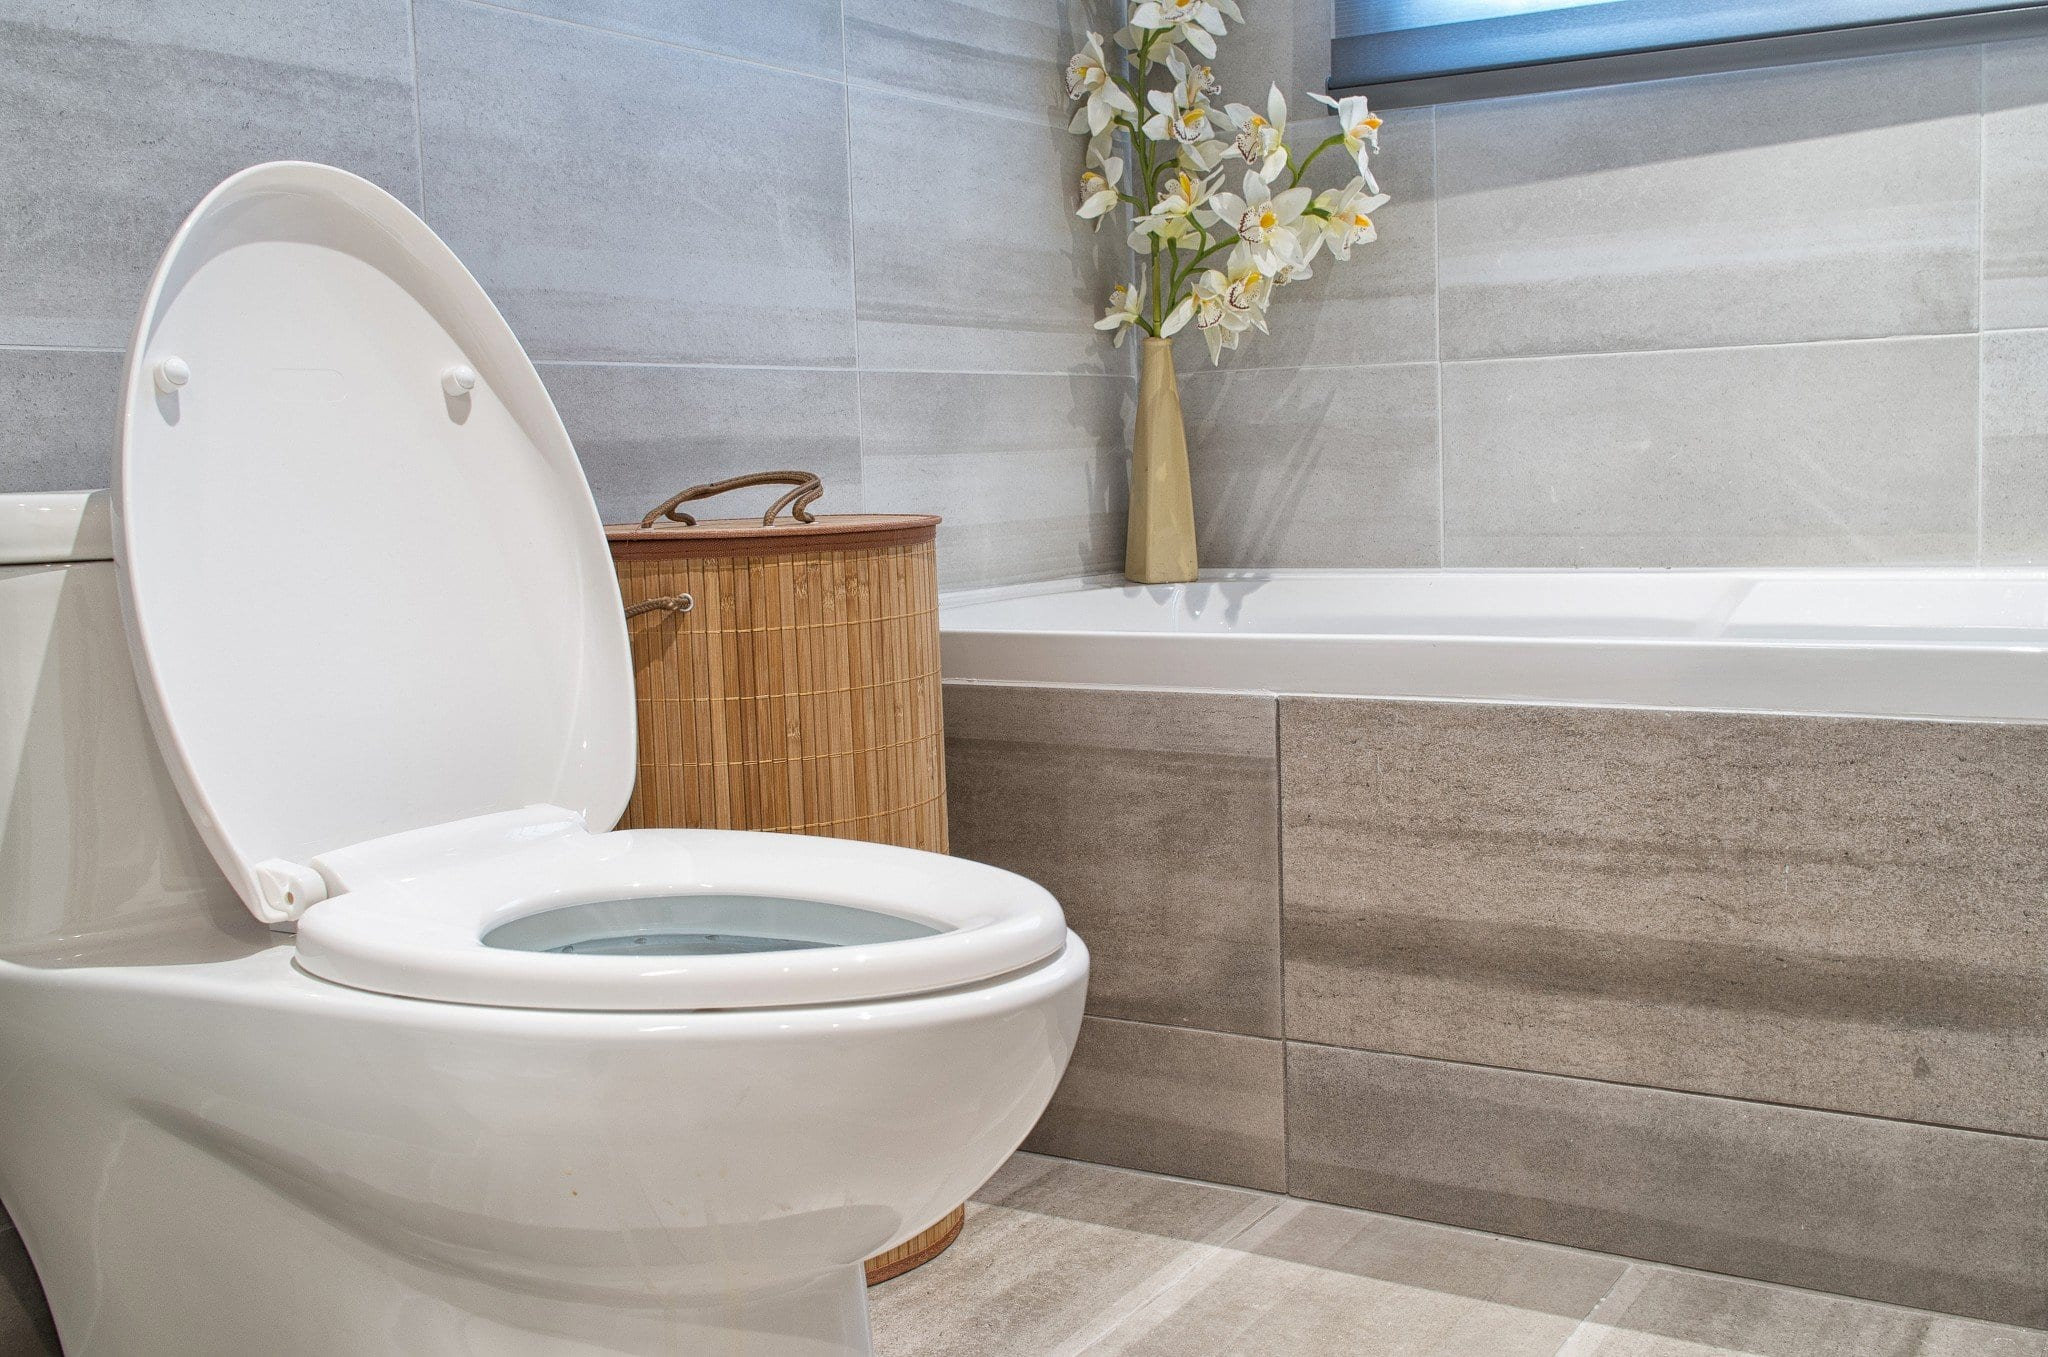 How to know when to Replace a Toilet? 1